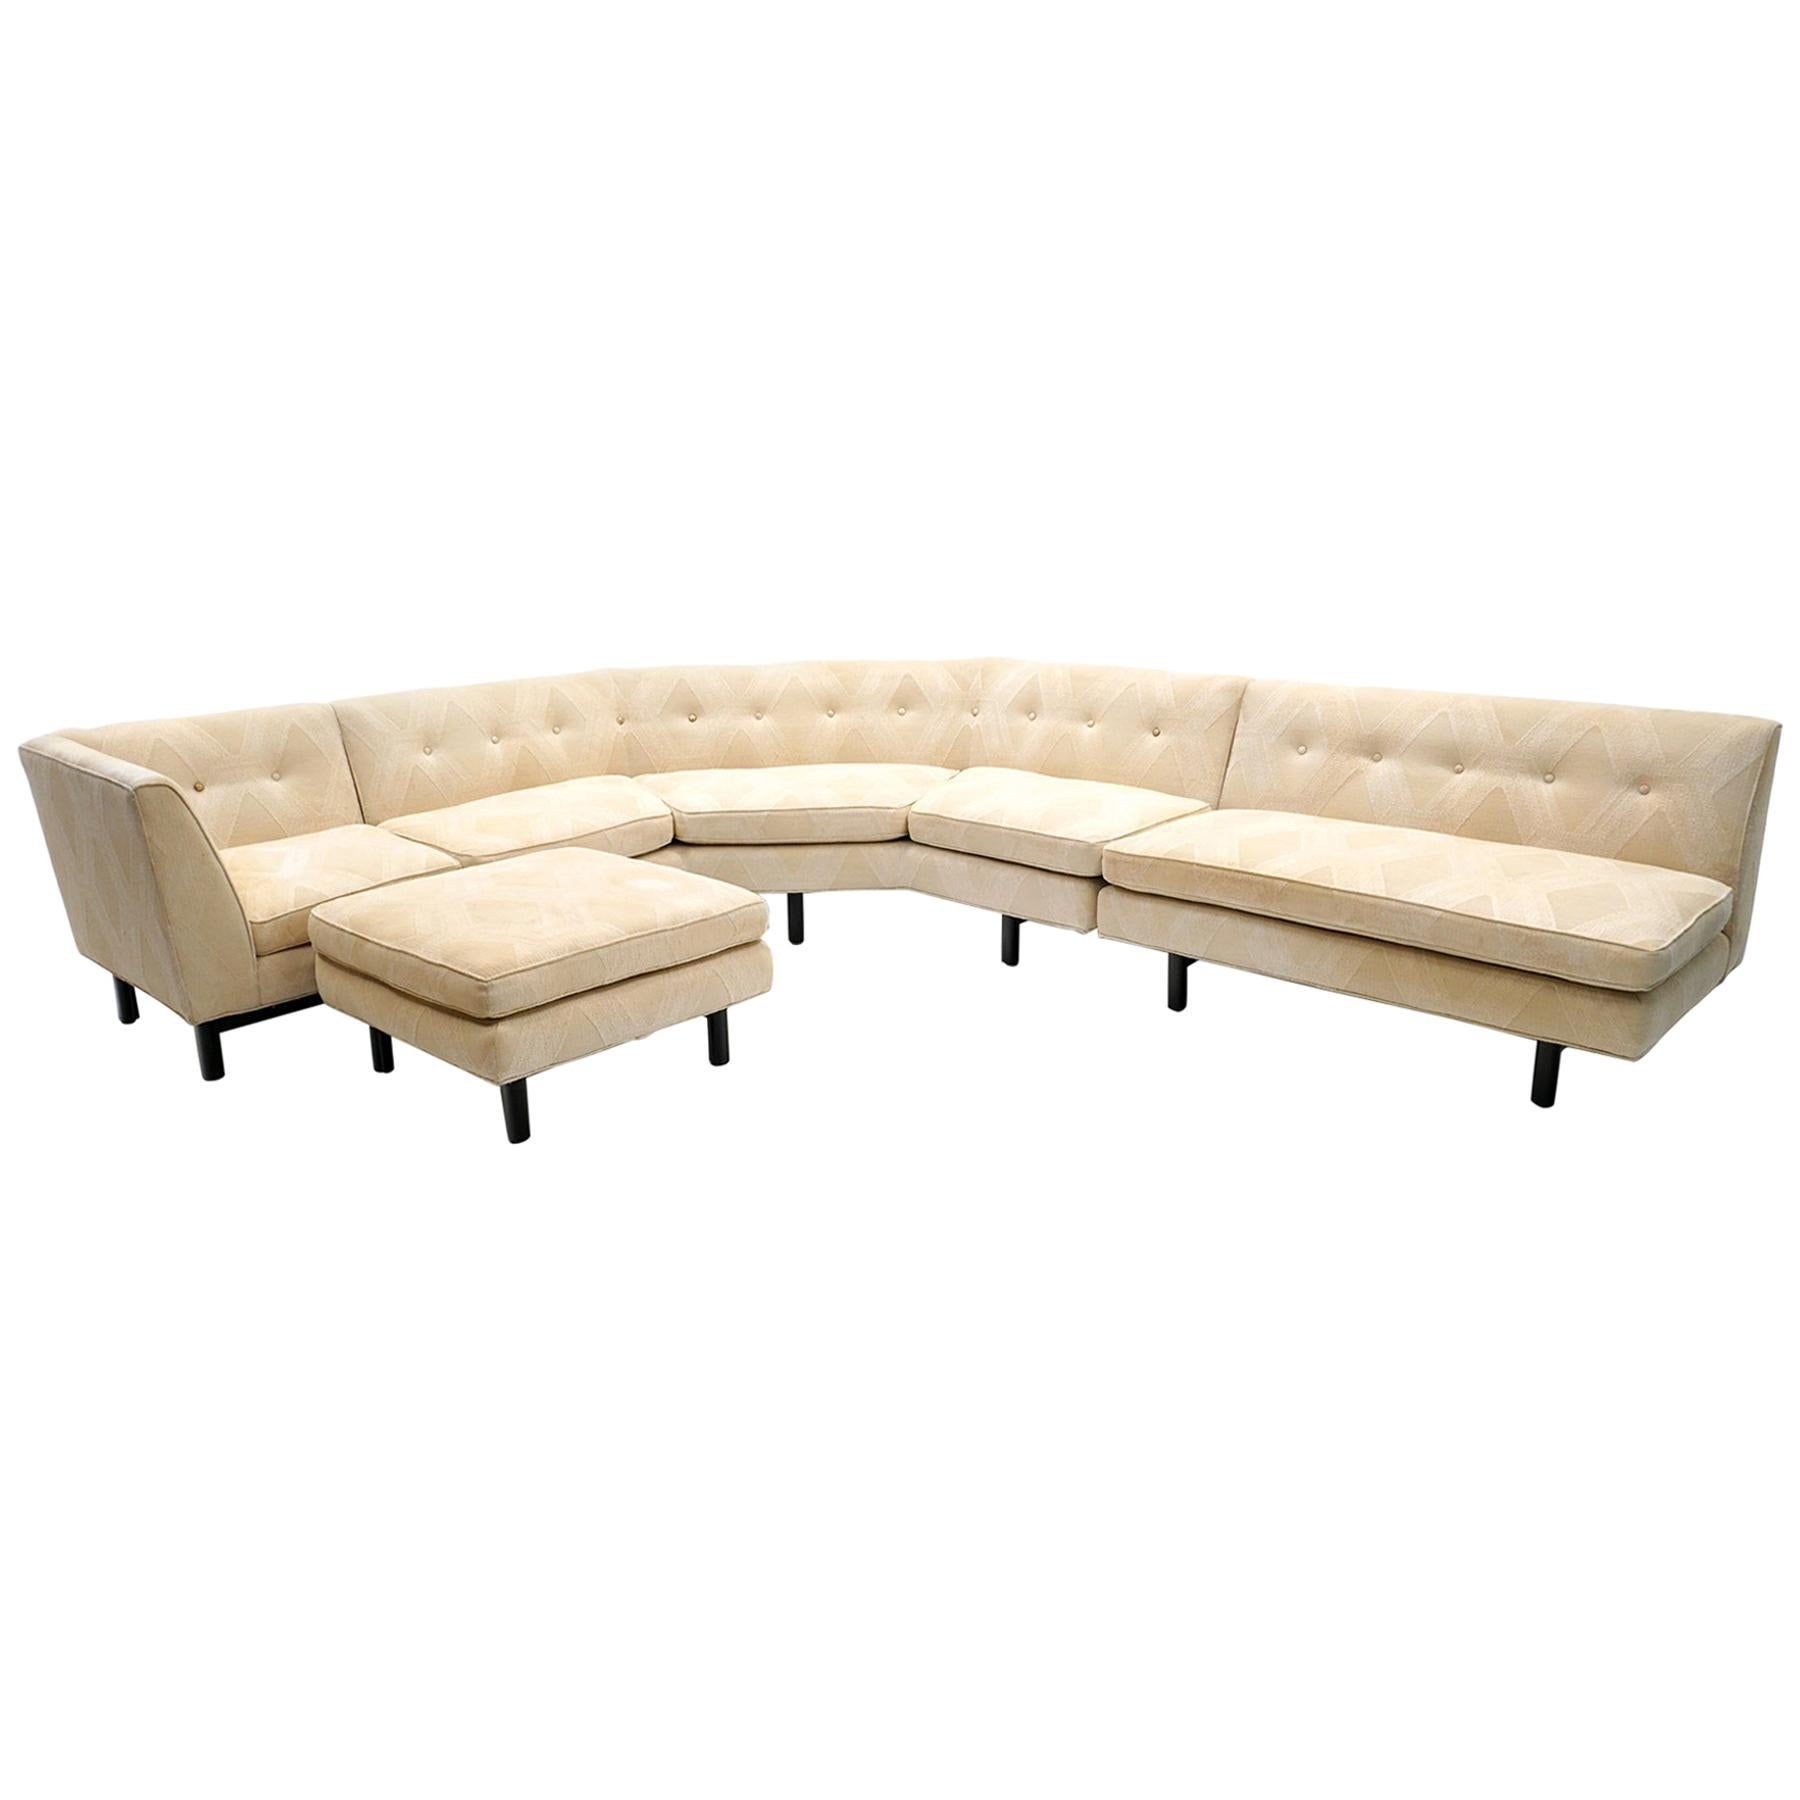 Sectional Sofa with Ottoman by Edward Wormley for Dunbar, L Shape, Reversable